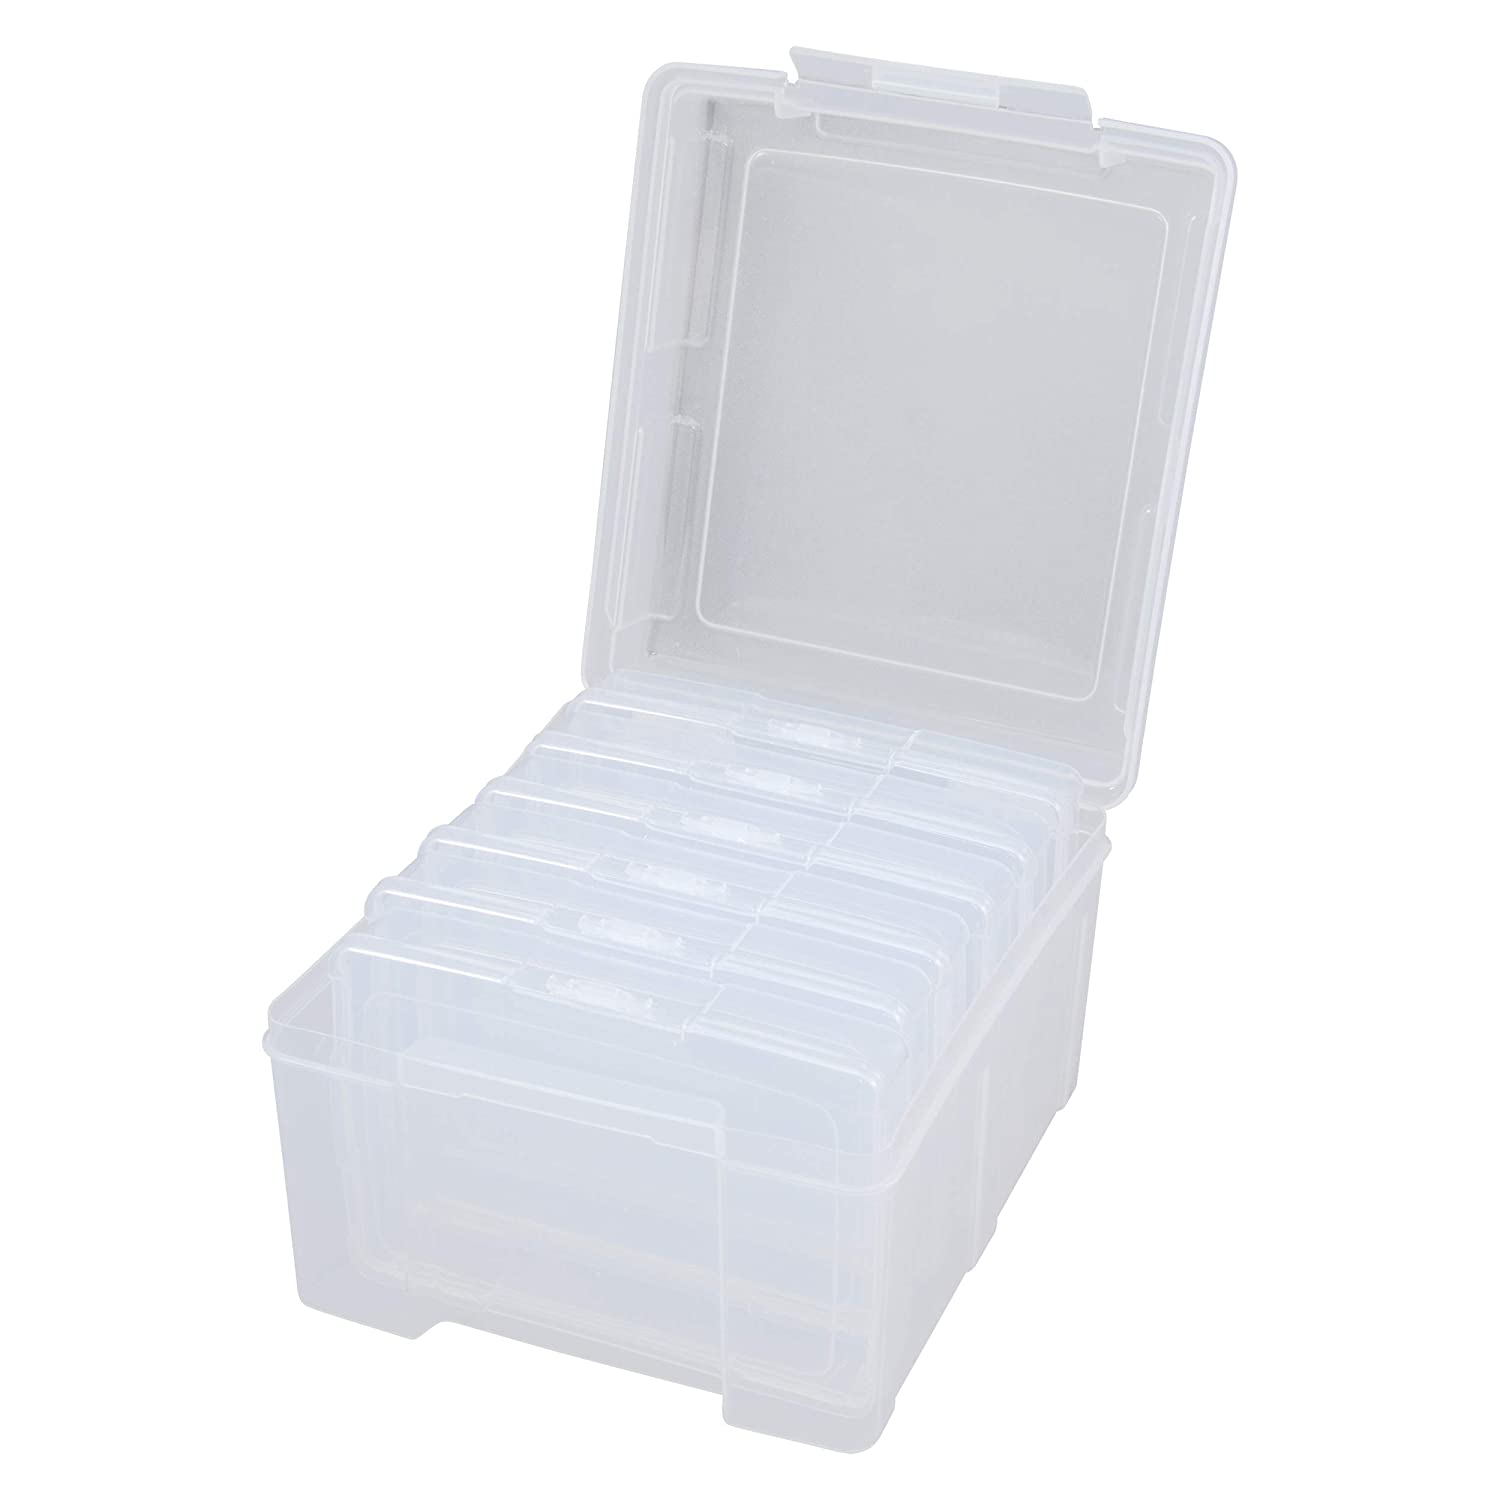 Embellishment and Craft Storage Containers Holds up to 600 Photos Advantus Photo Keeper Box with 6 Individual Clear Photo Cases 61989 Advantus Corp.- Office